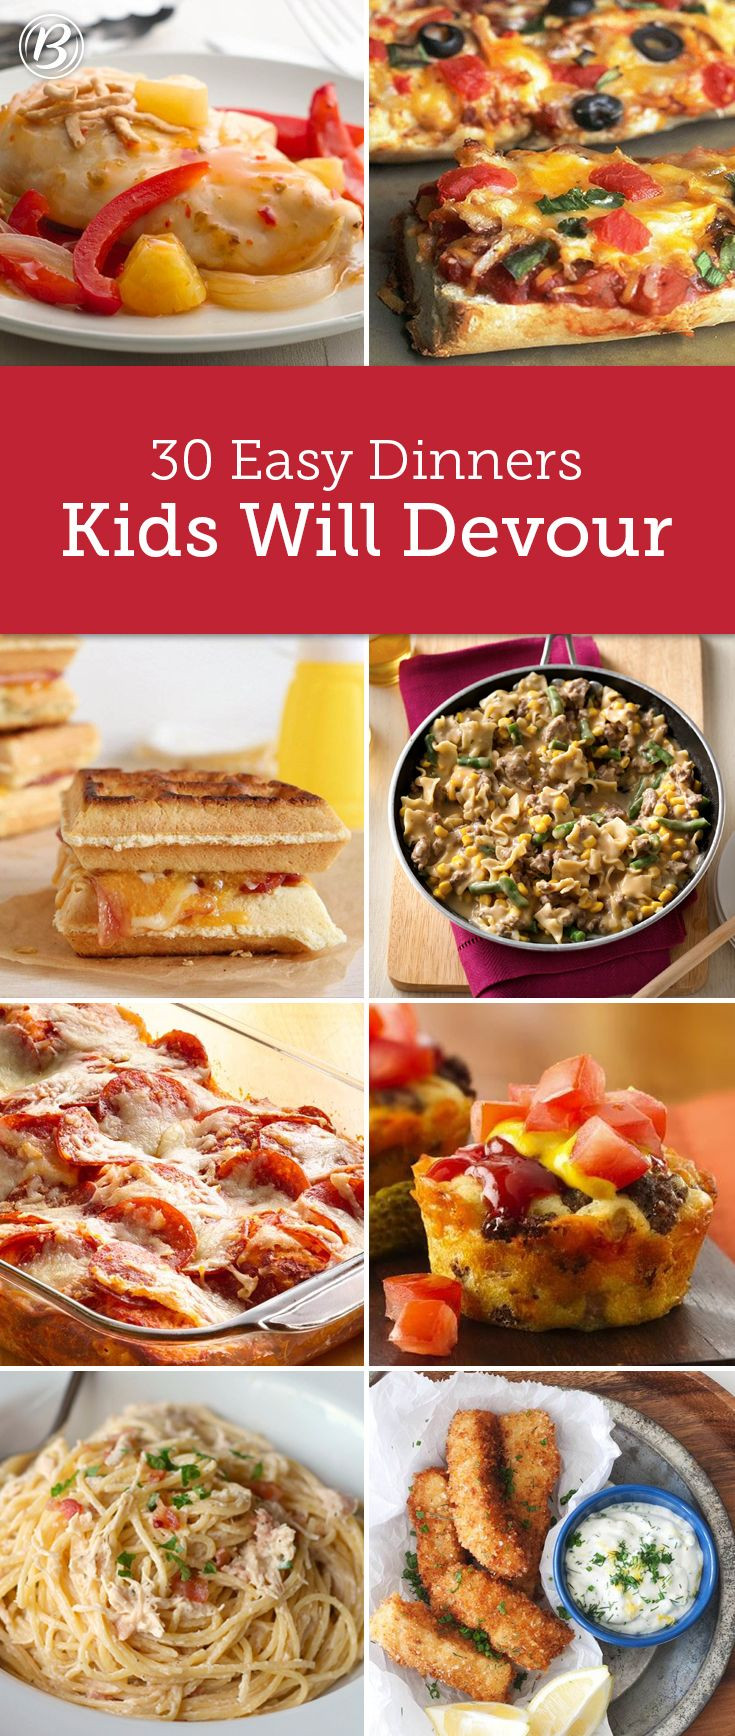 Easy Healthy Dinner Recipes Kid Friendly  Kids' Most Requested Dinners